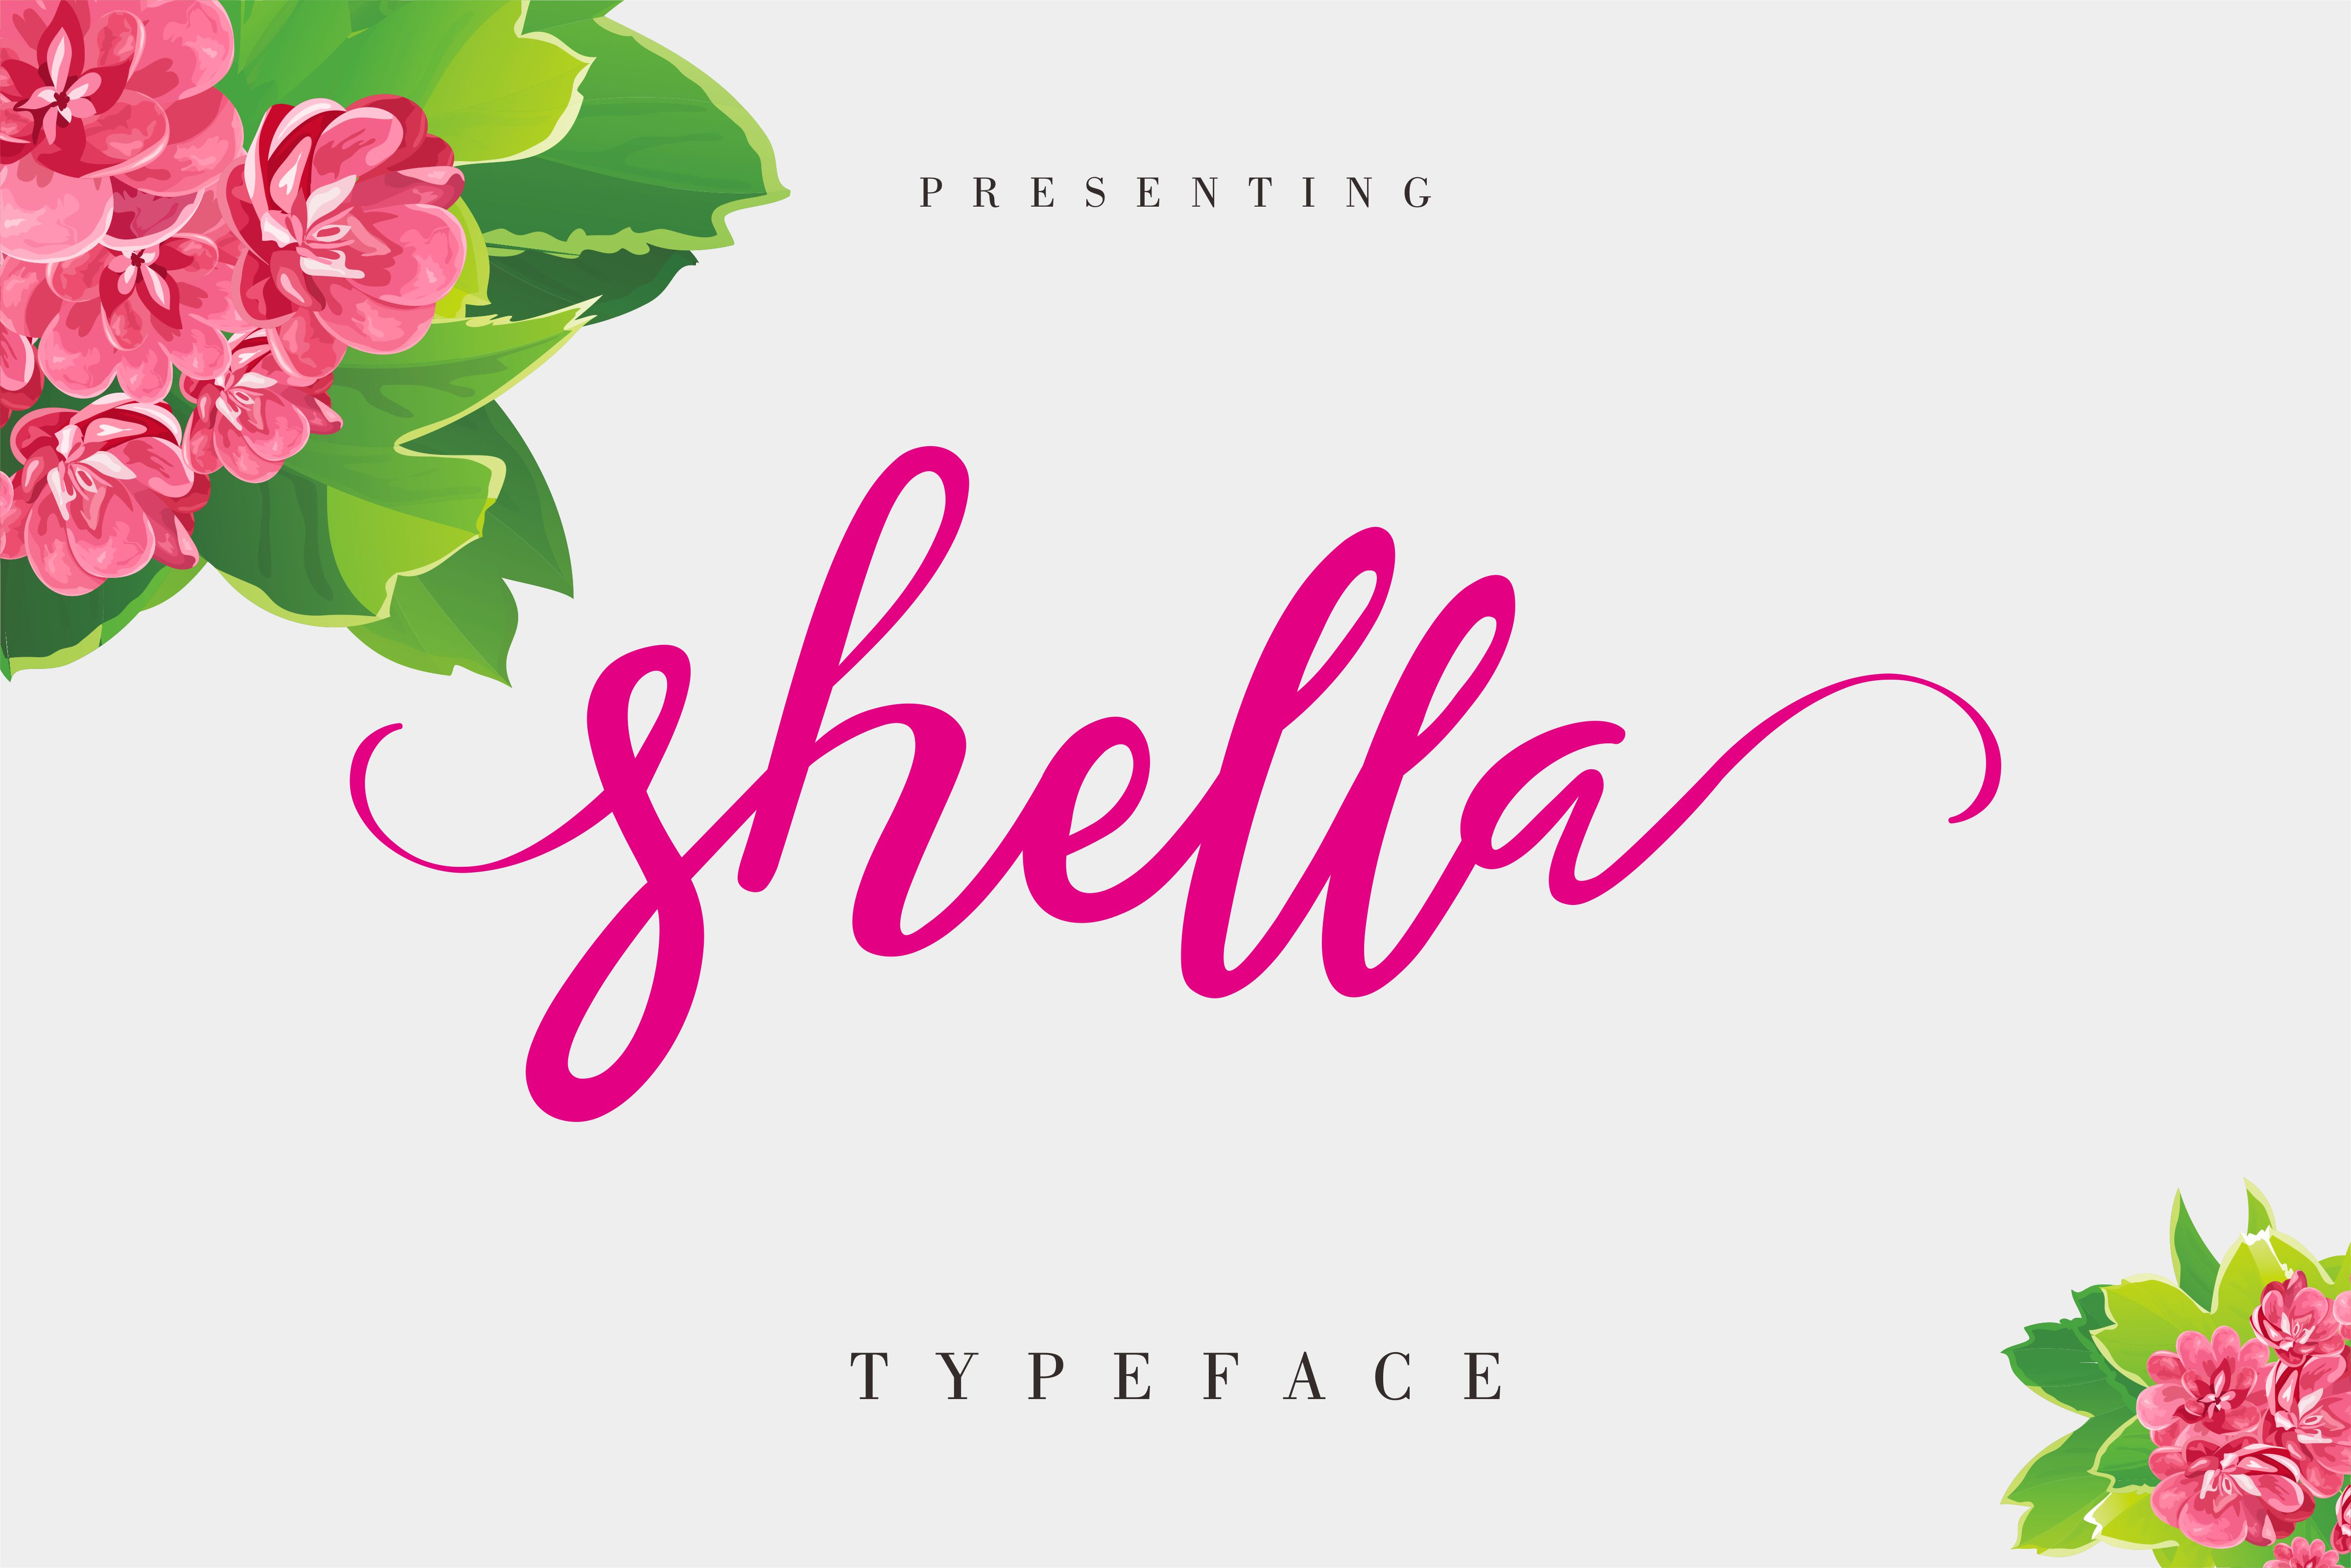 Shella Script & Handwritten Font By No Gravity Type